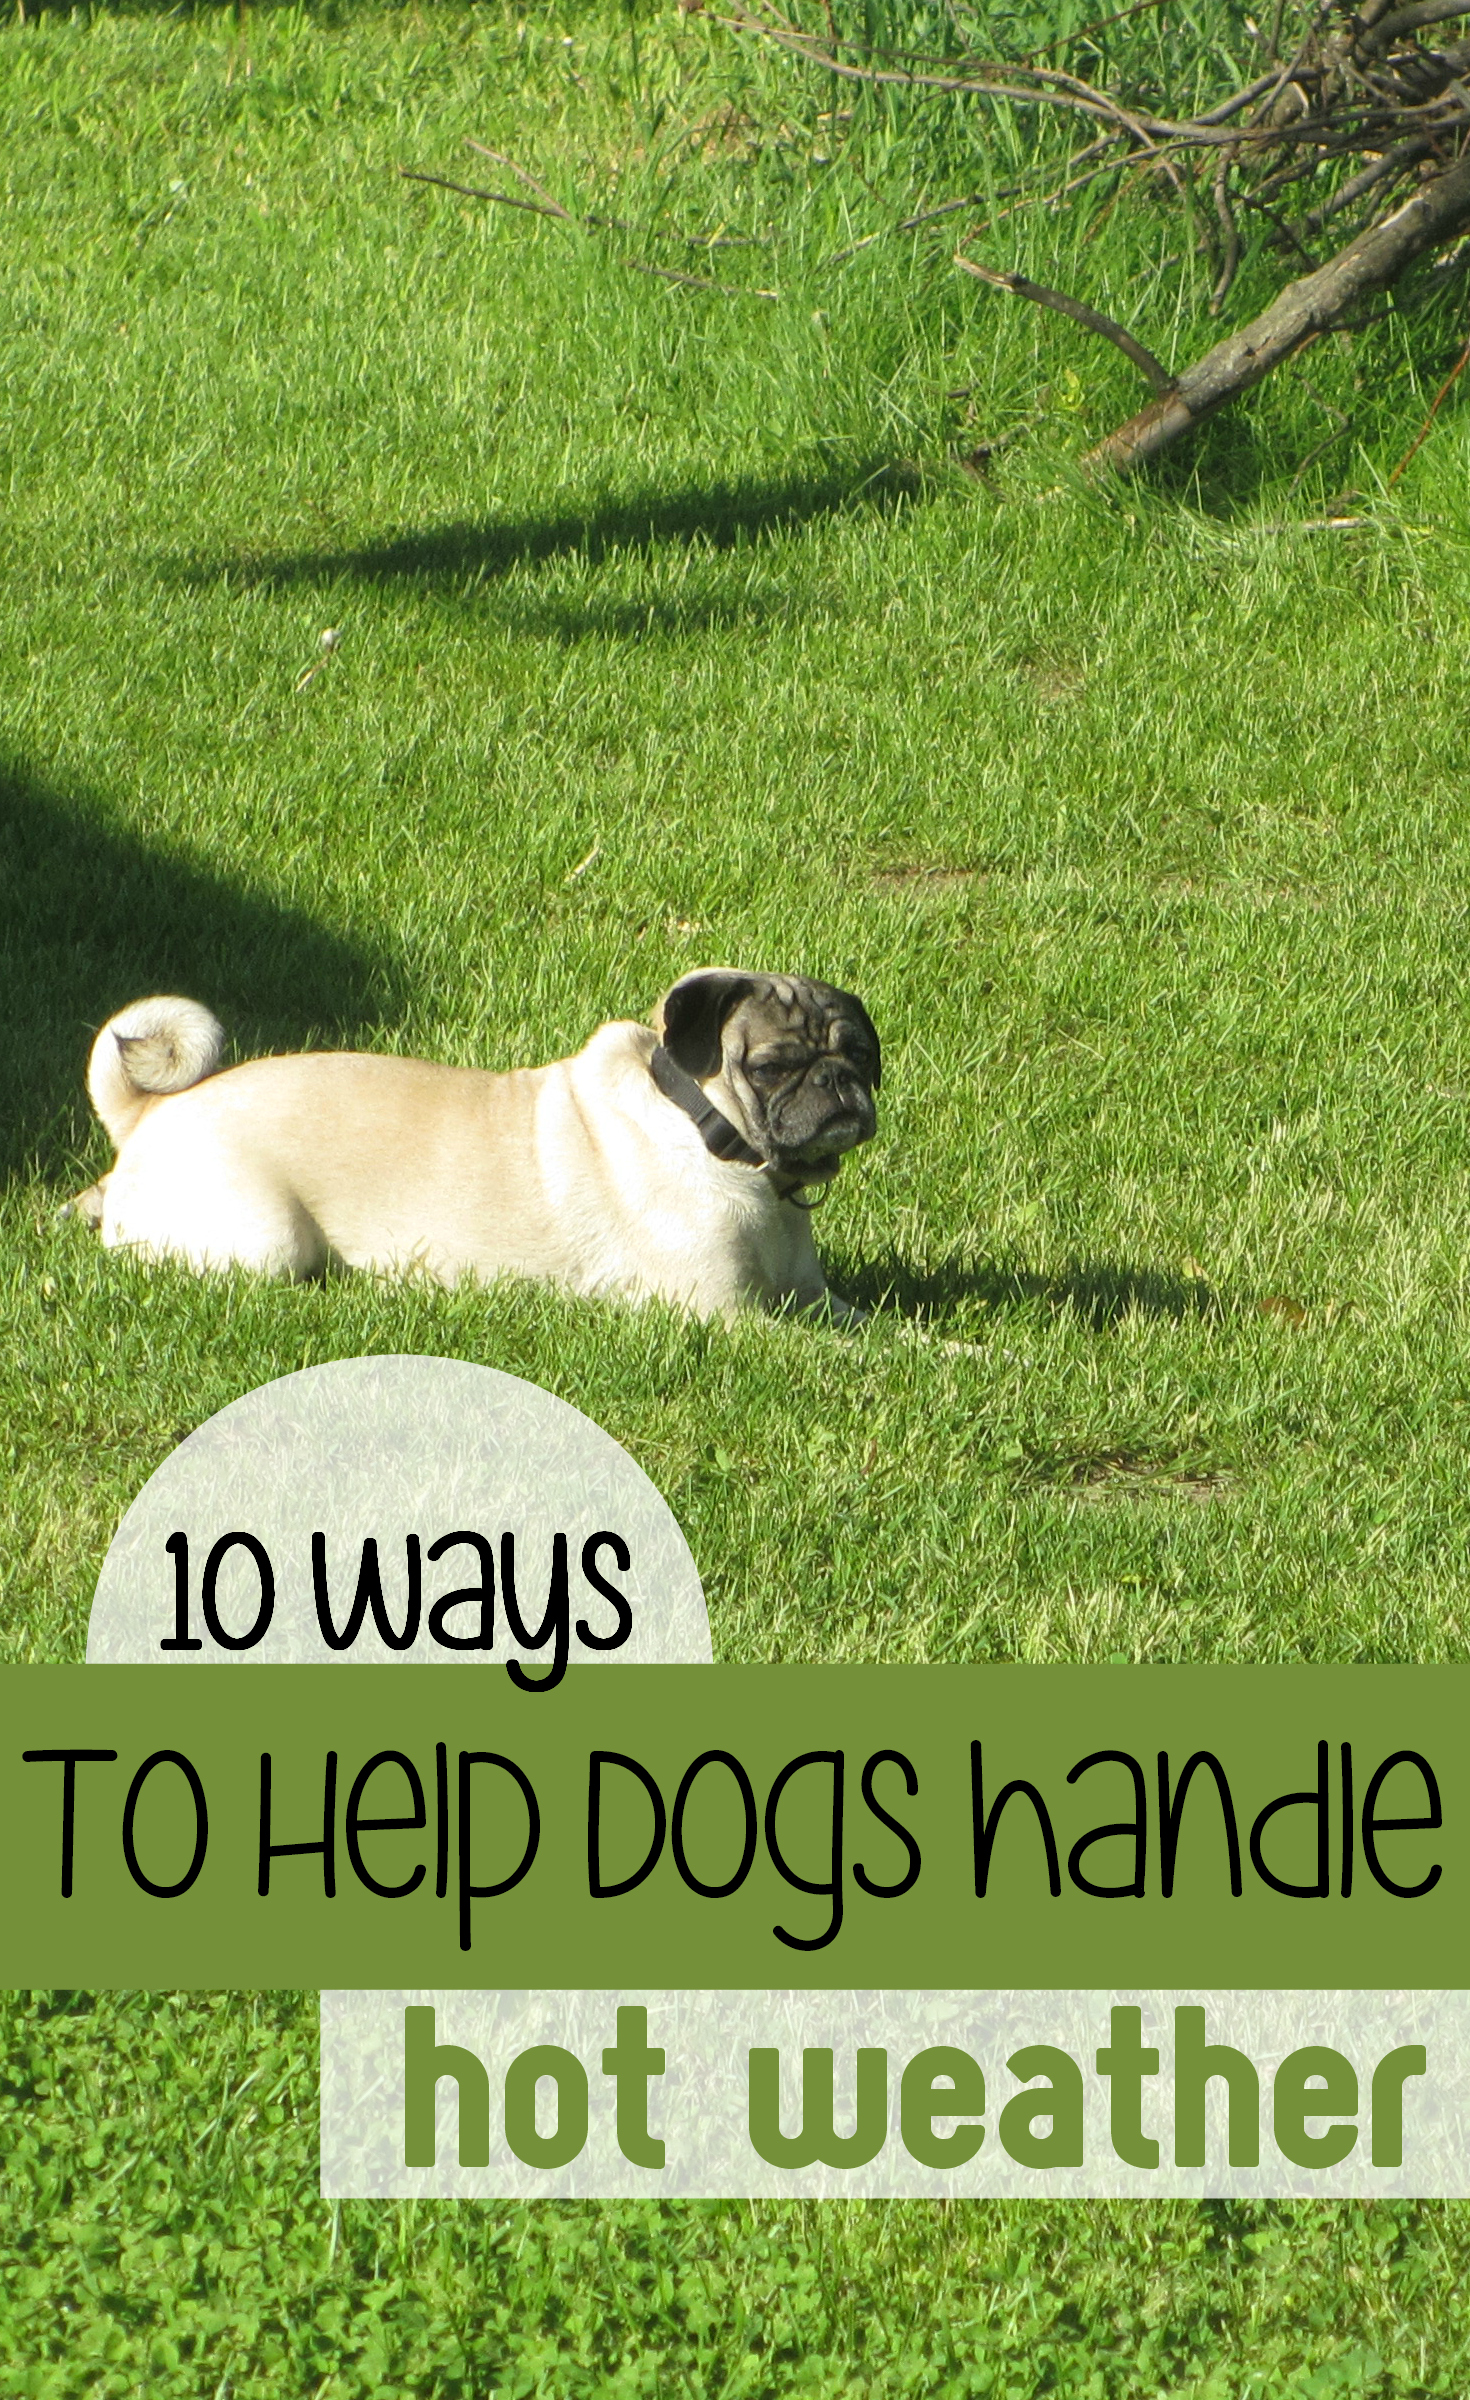 10 ways to help dogs handle summer weather